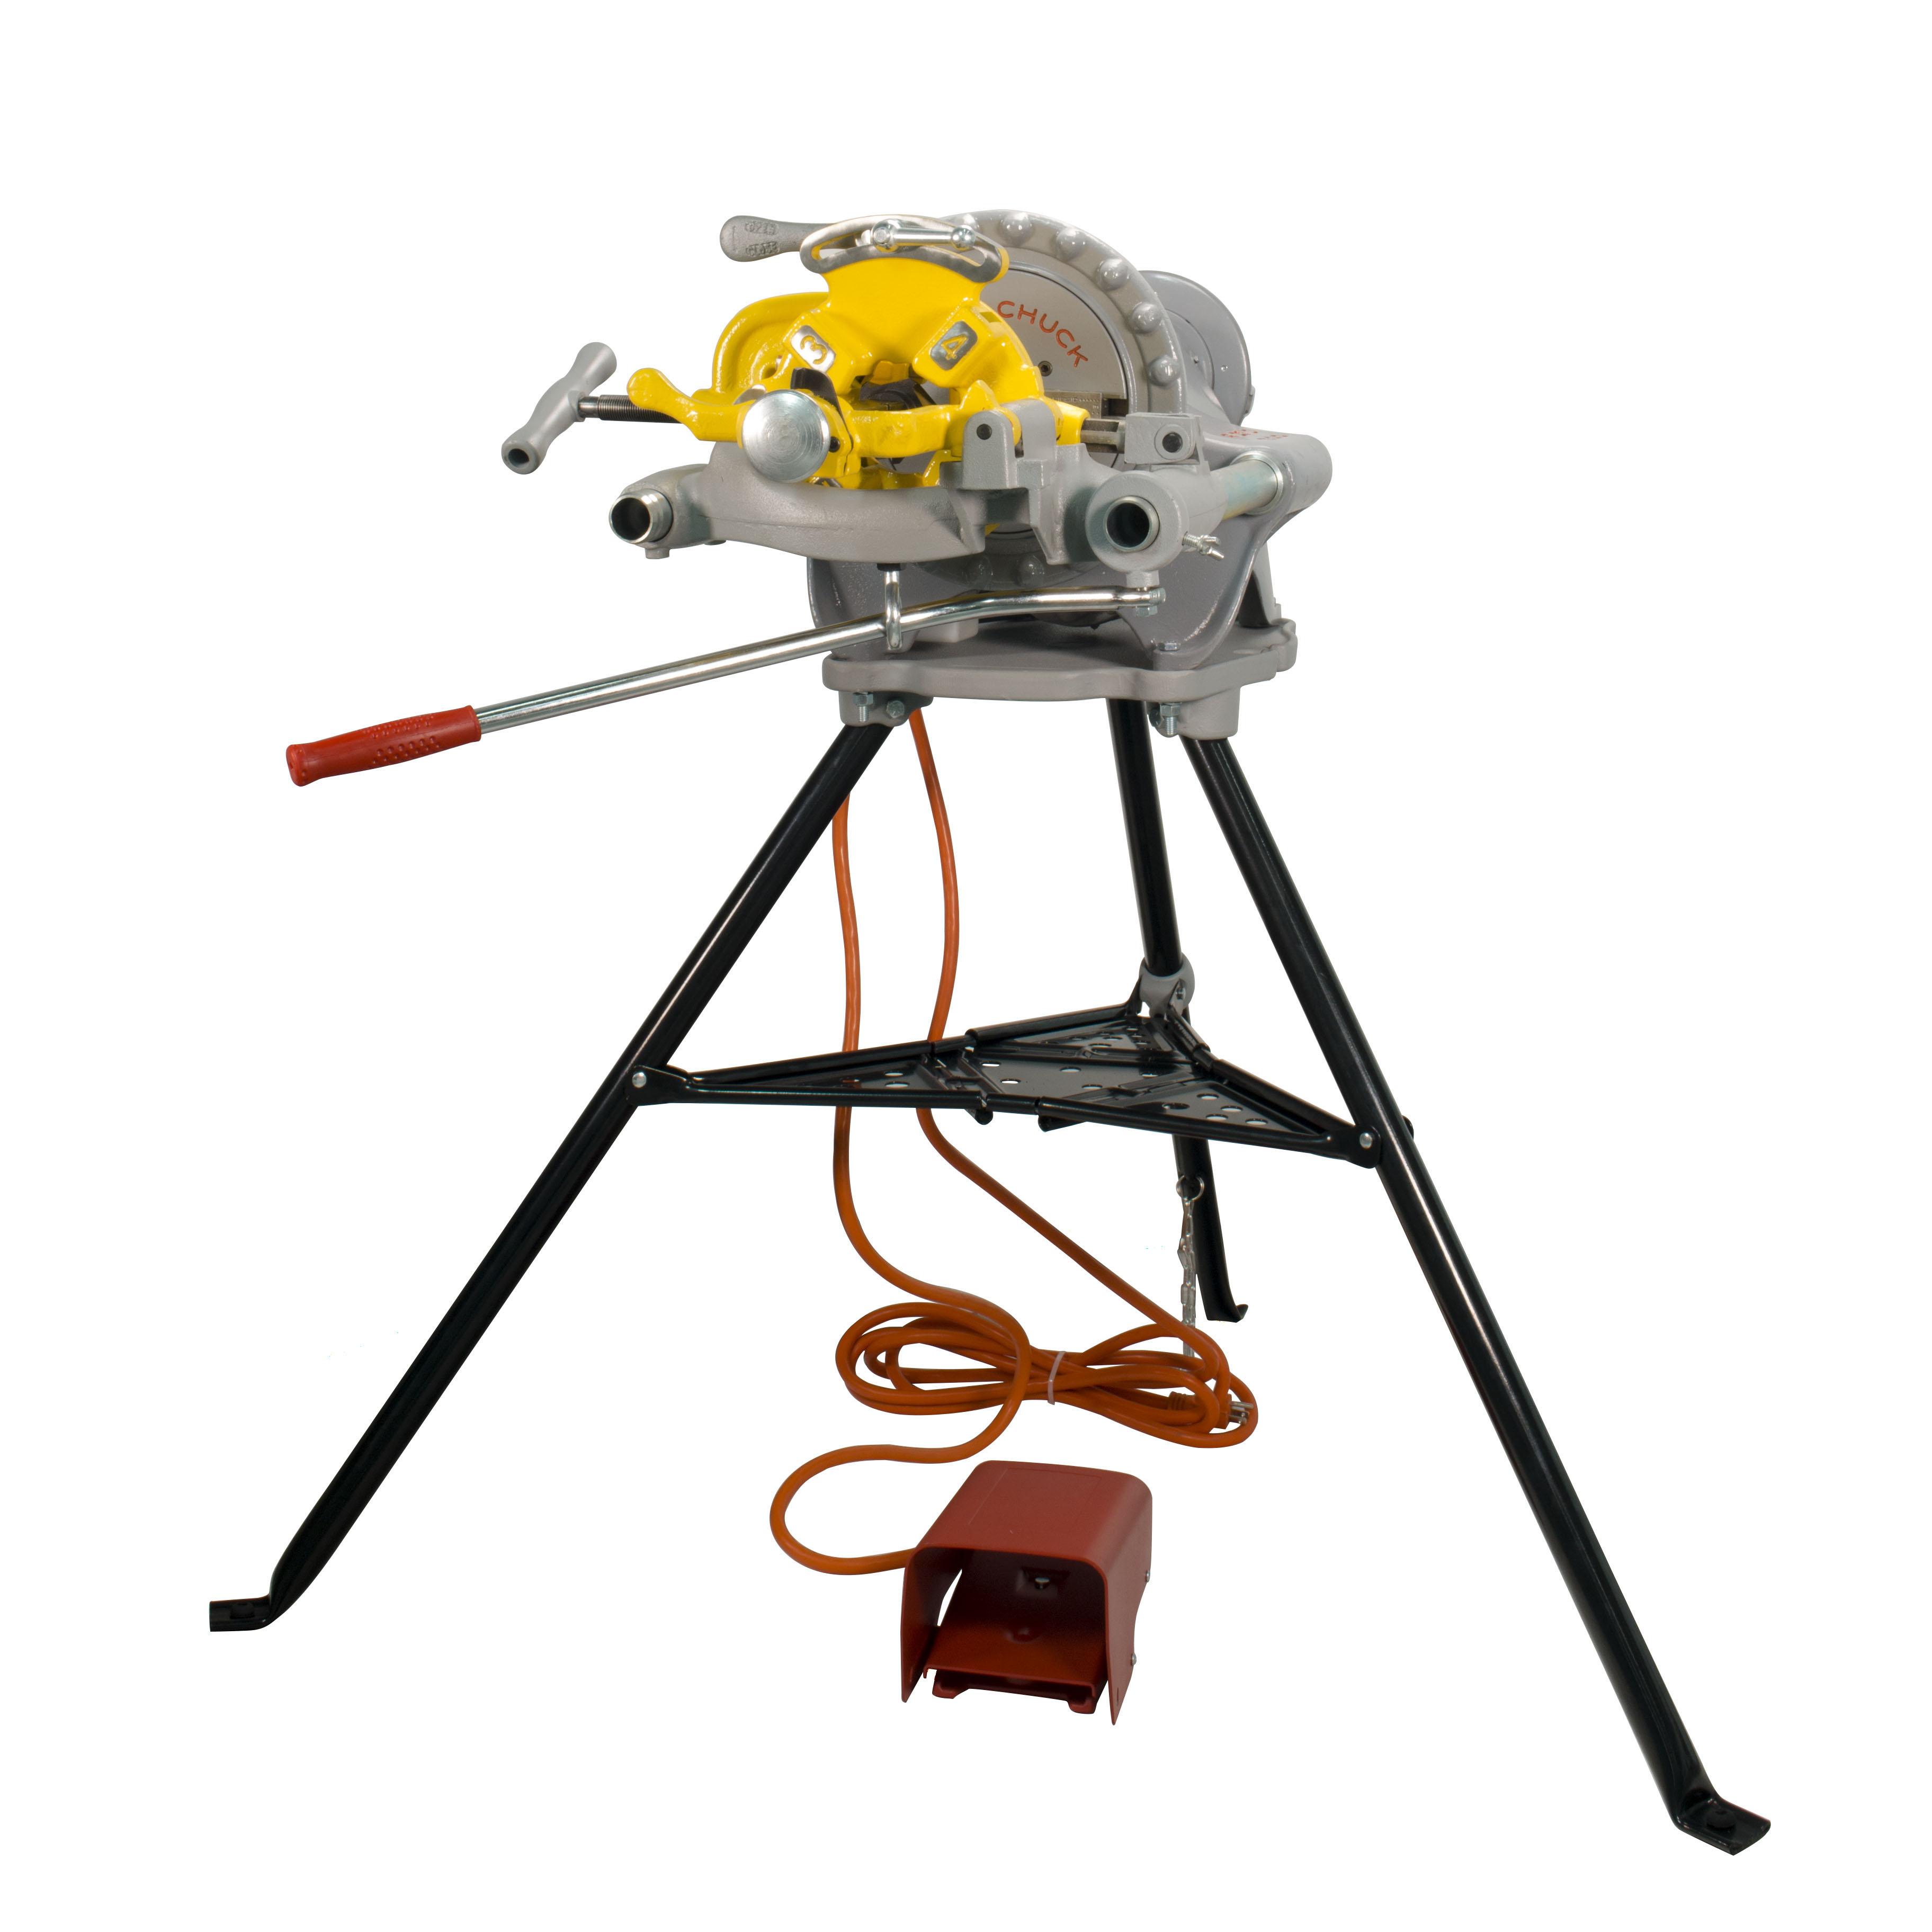 SDT Reconditioned RIDGID ® 300 Pipe Threading Machine 156...